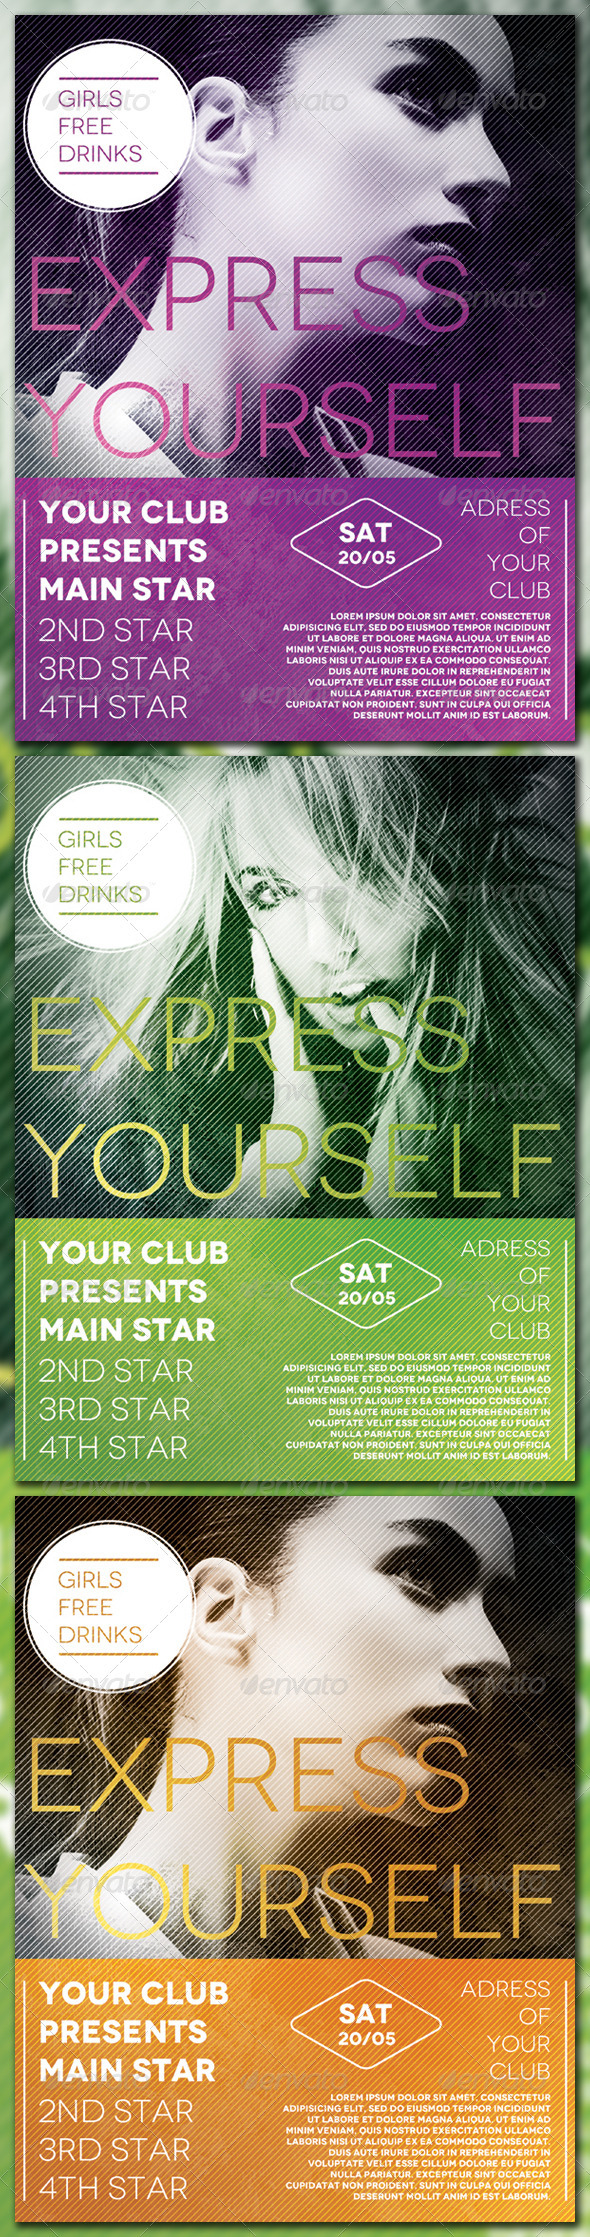 Express Yourself Flyer - Flyers Print Templates